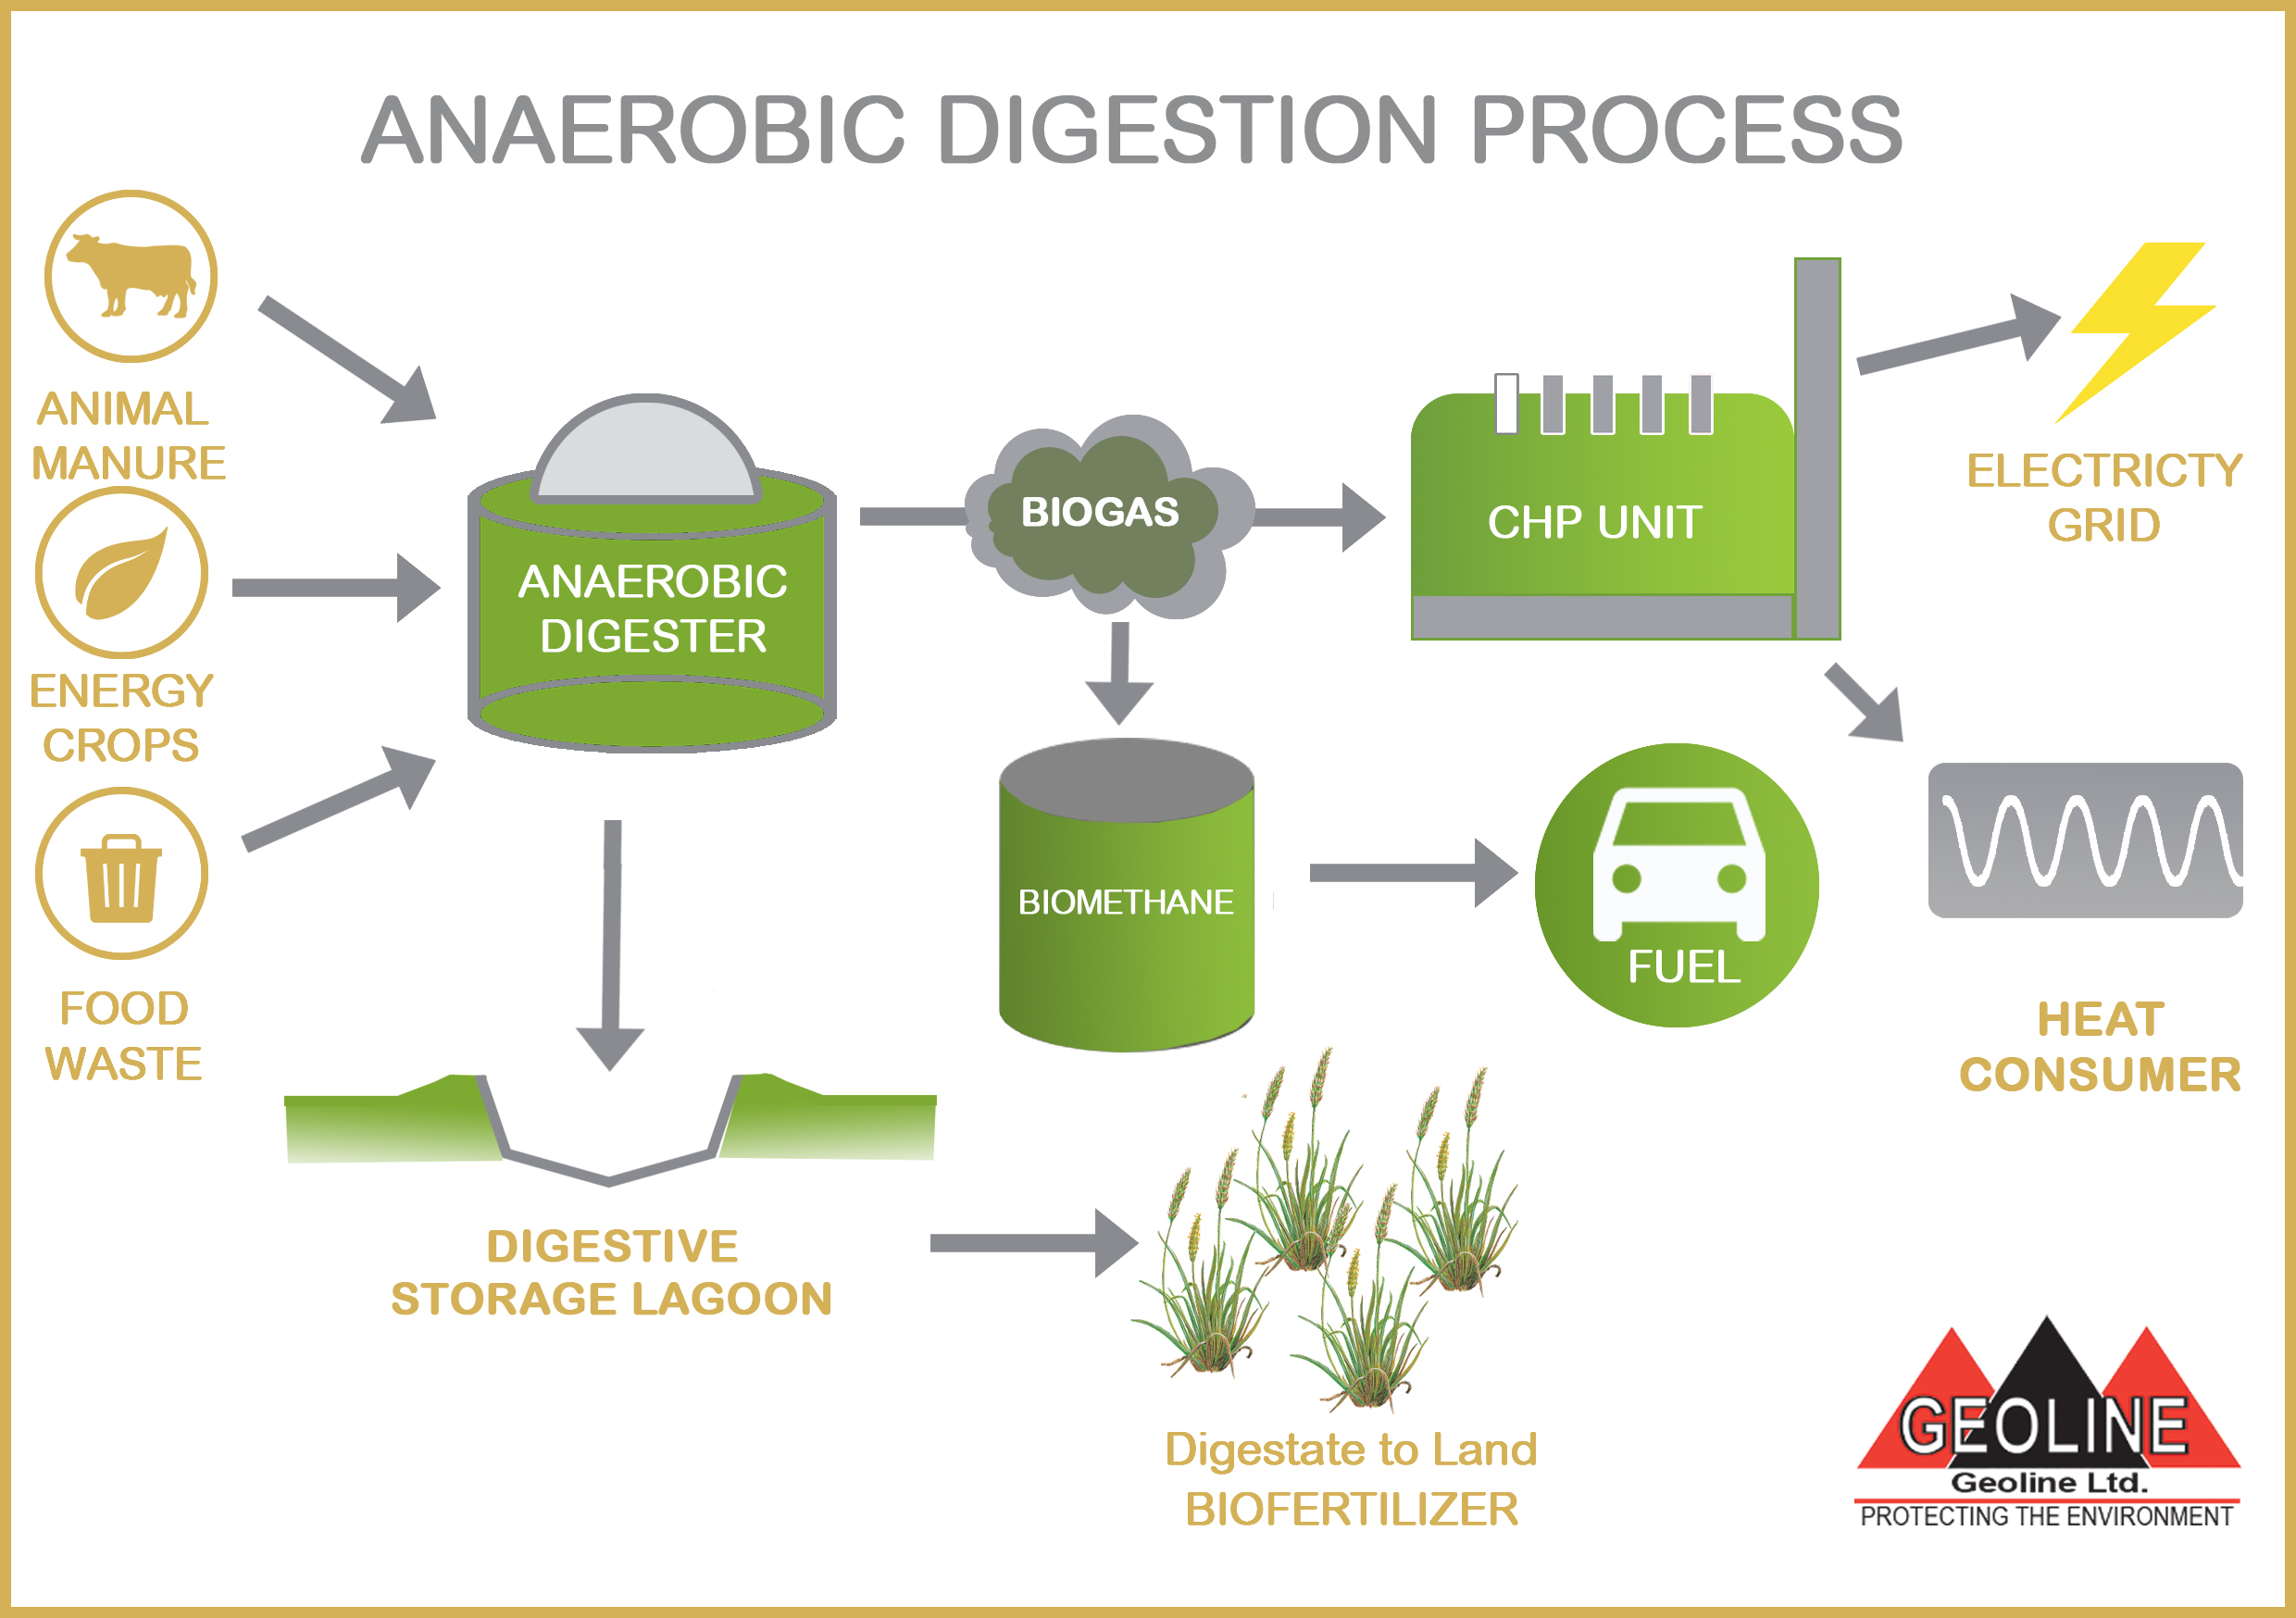 anaerobic digestion process